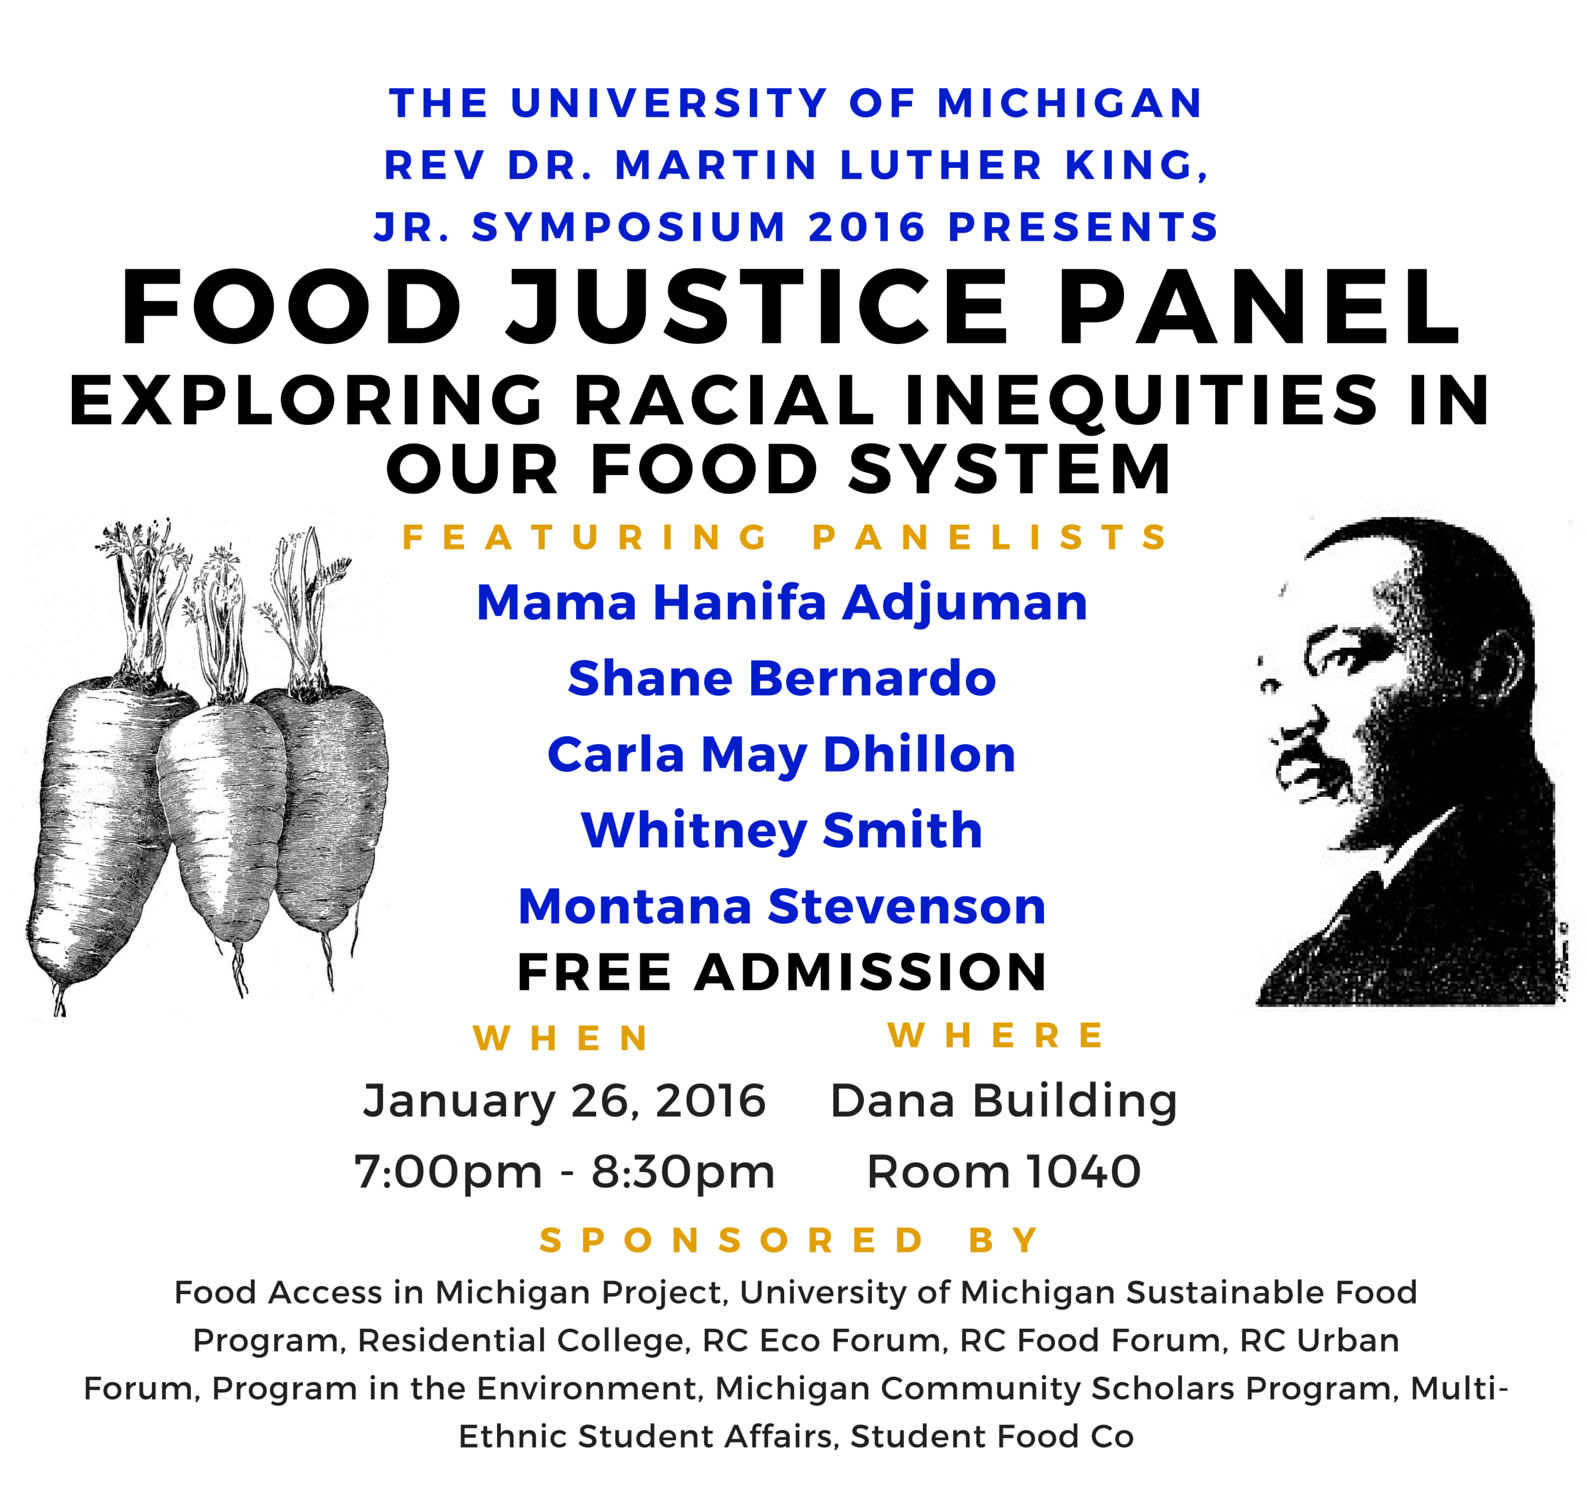 Food Justice Panel: Exploring Racial Inequities in the Food System (Jan 26)